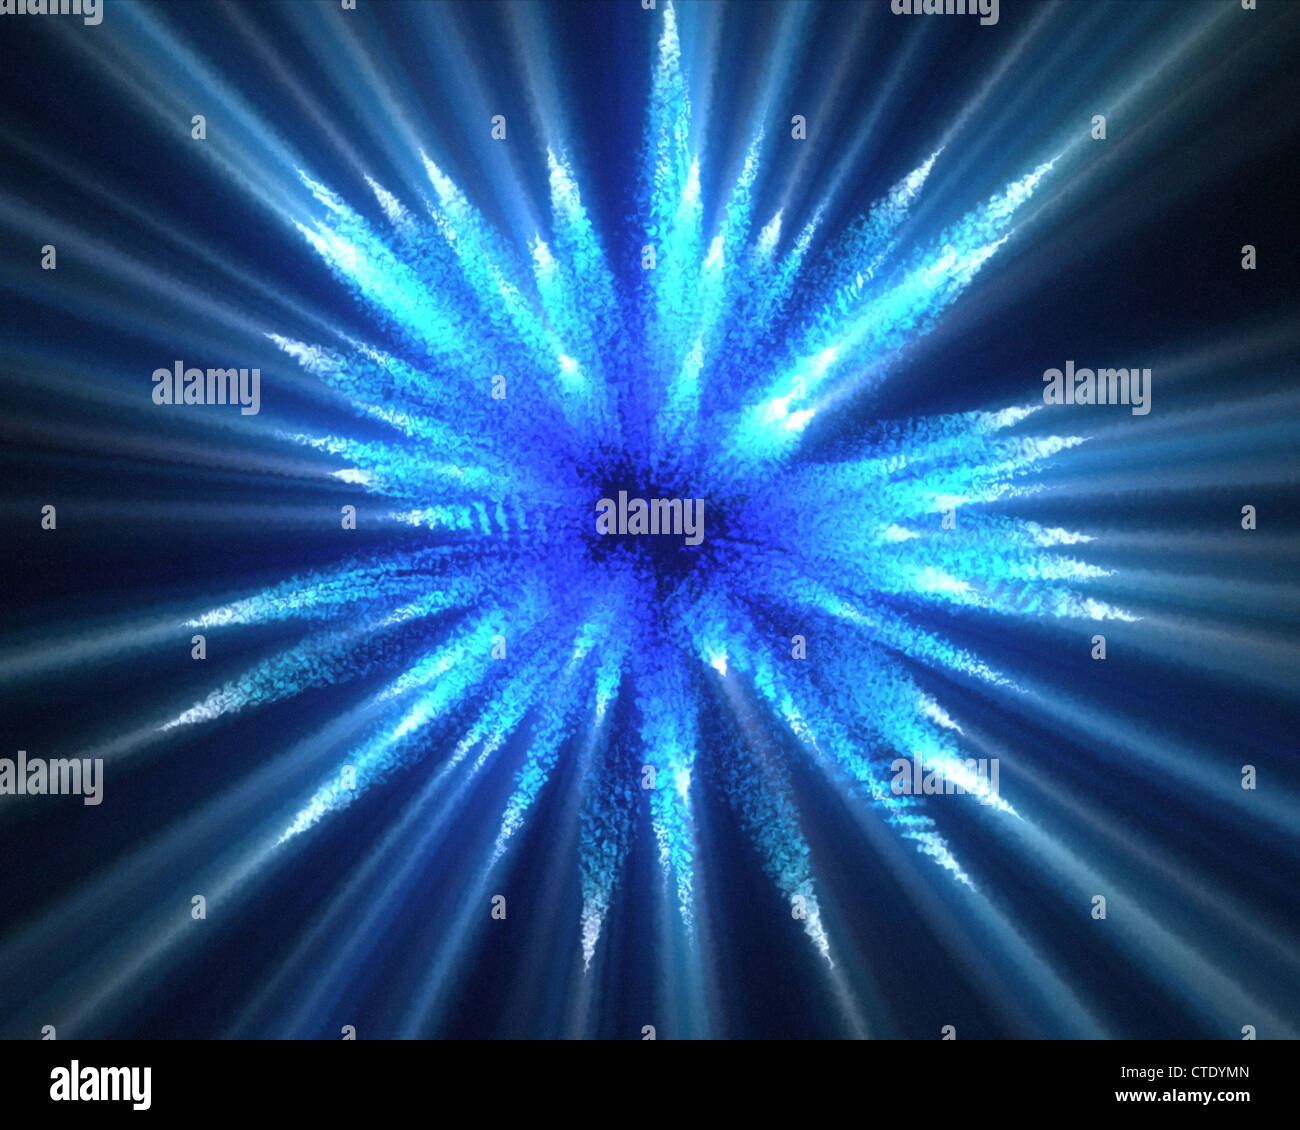 Blue lines of fluorescent lights - Stock Image